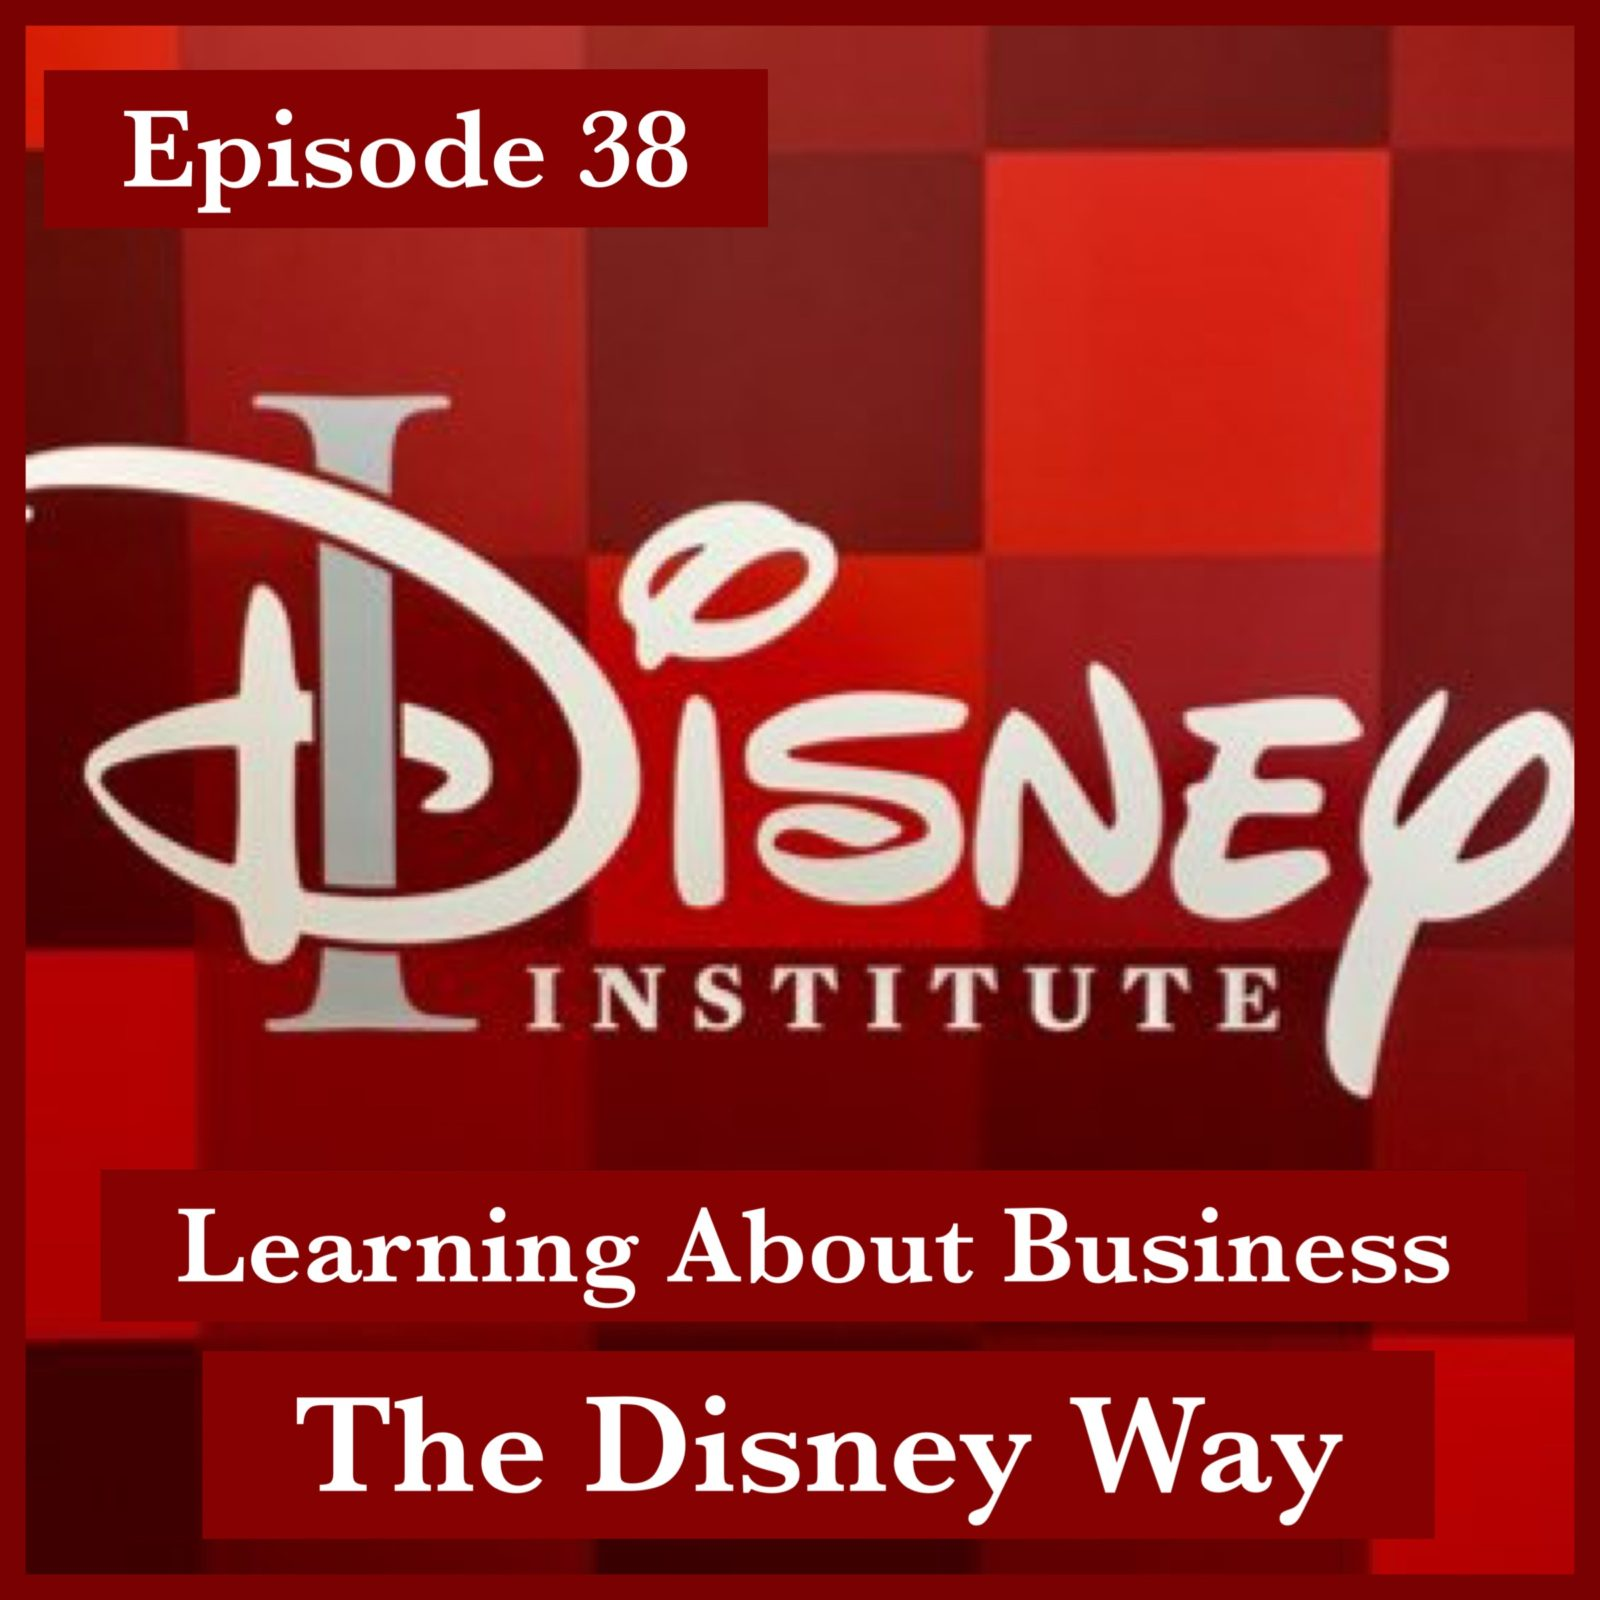 Episode 38 - Disney Institute - Learning About Business the Disney Way